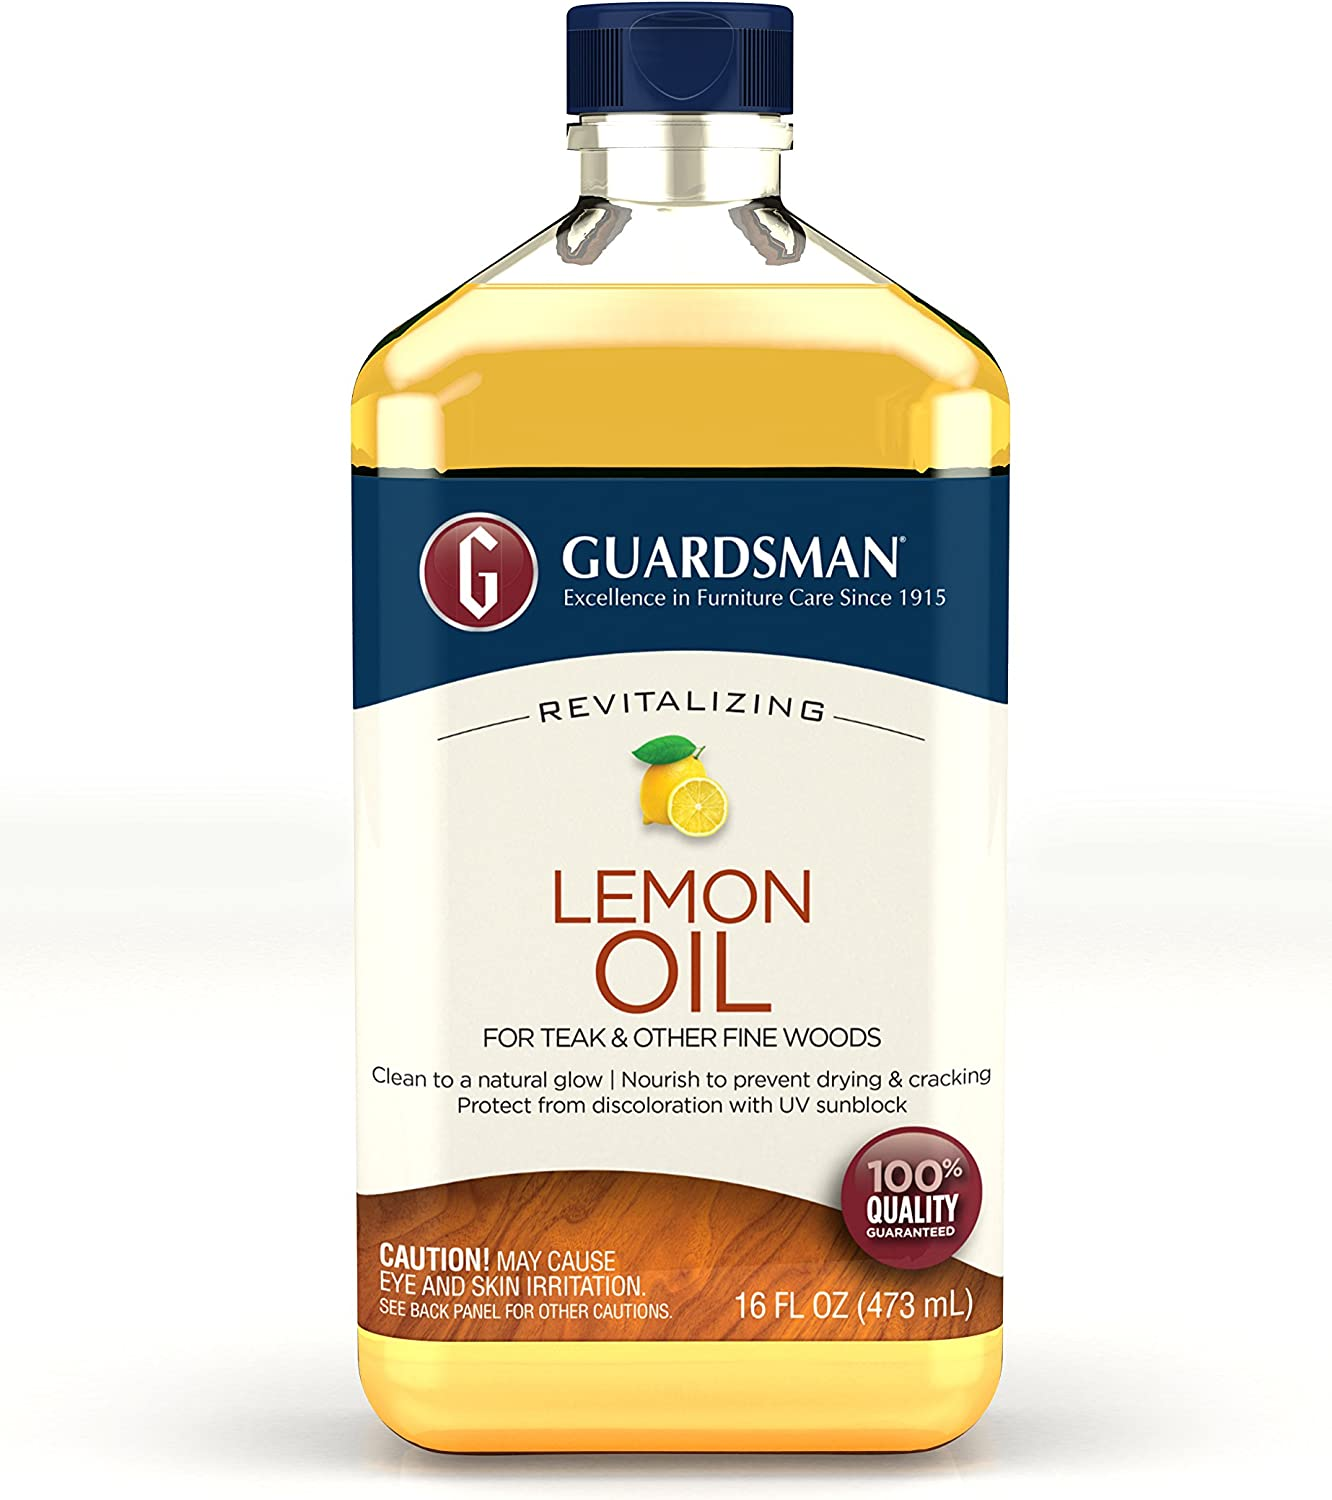 Guardsman Revitalizing Lemon Oil For Wood Furniture - 16 oz- UV protection, Cleans, Restores and Protects - 461700